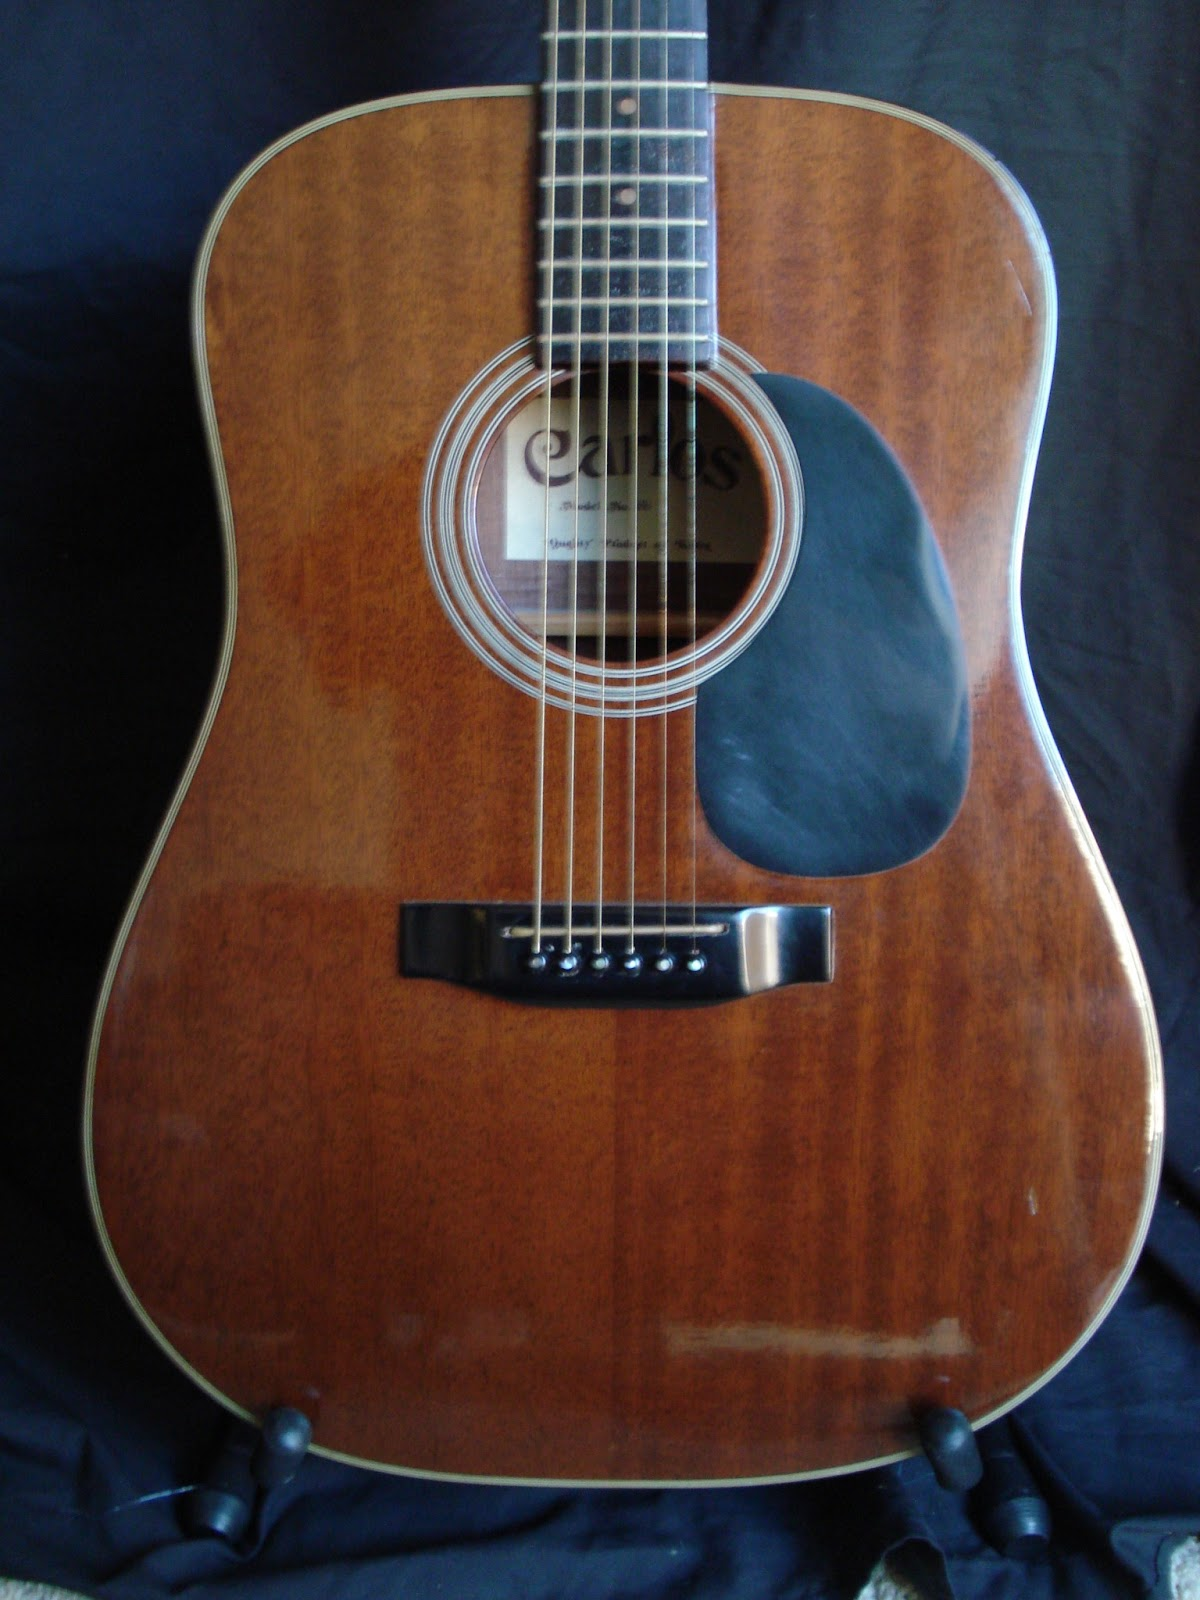 249 Best Images About Mens Fashion On Pinterest: SoCal Gear Museum: 1982 Carlos Model No. 249 Acoustic Guitar